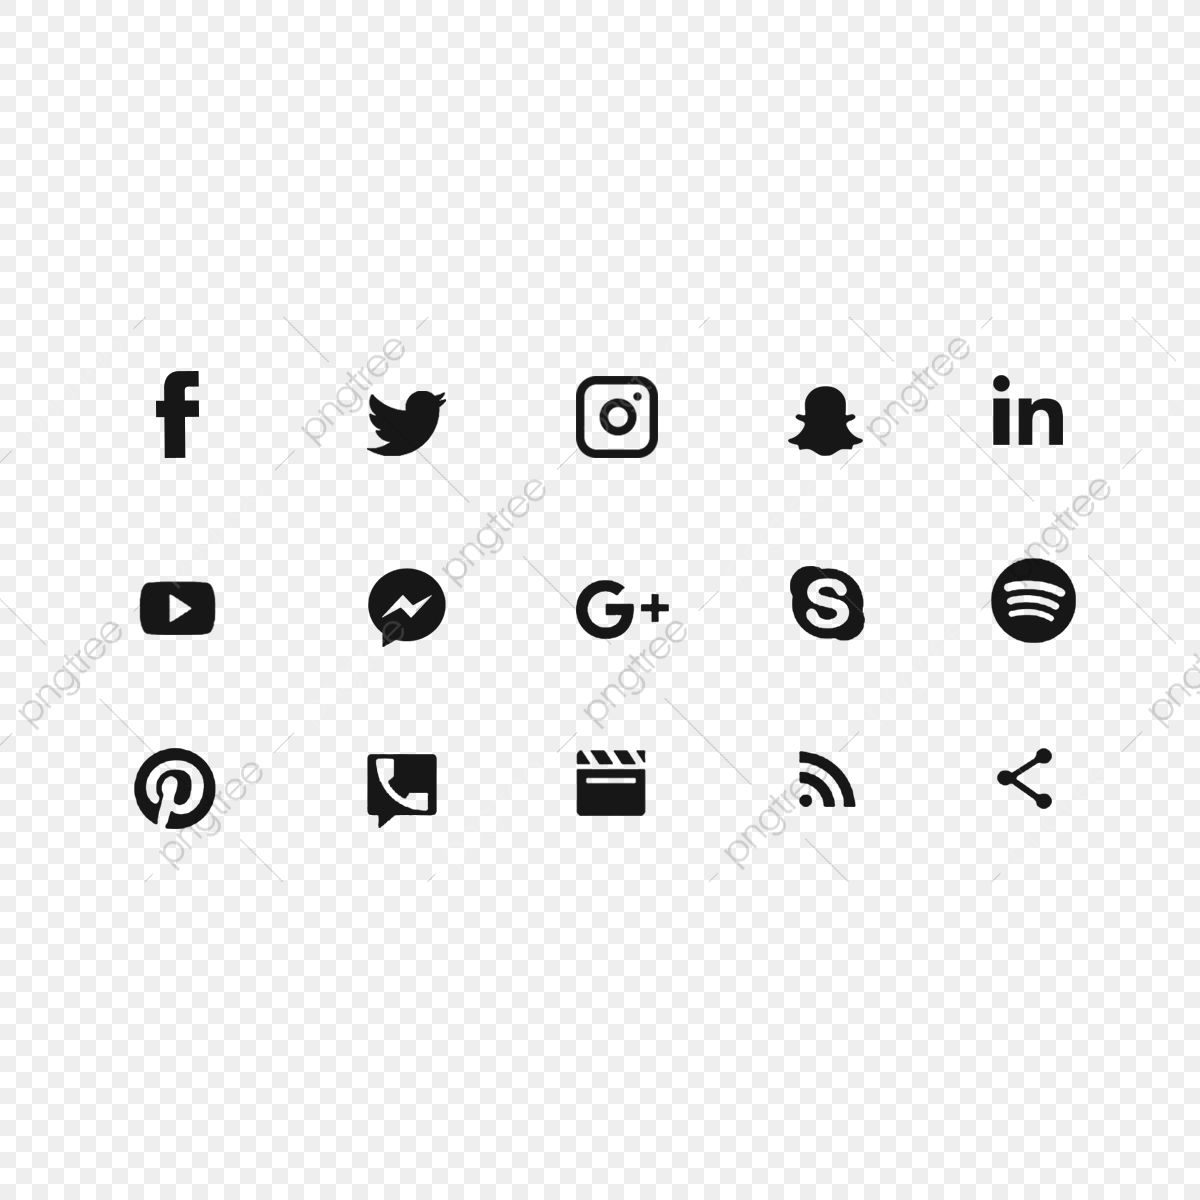 Black Social Media Icons Social Media Icons Social Media Social Media Logo Png Transparent Clipart Image And Psd File For Free Download Social Media Icons Black Social Media Icons Twitter Icon